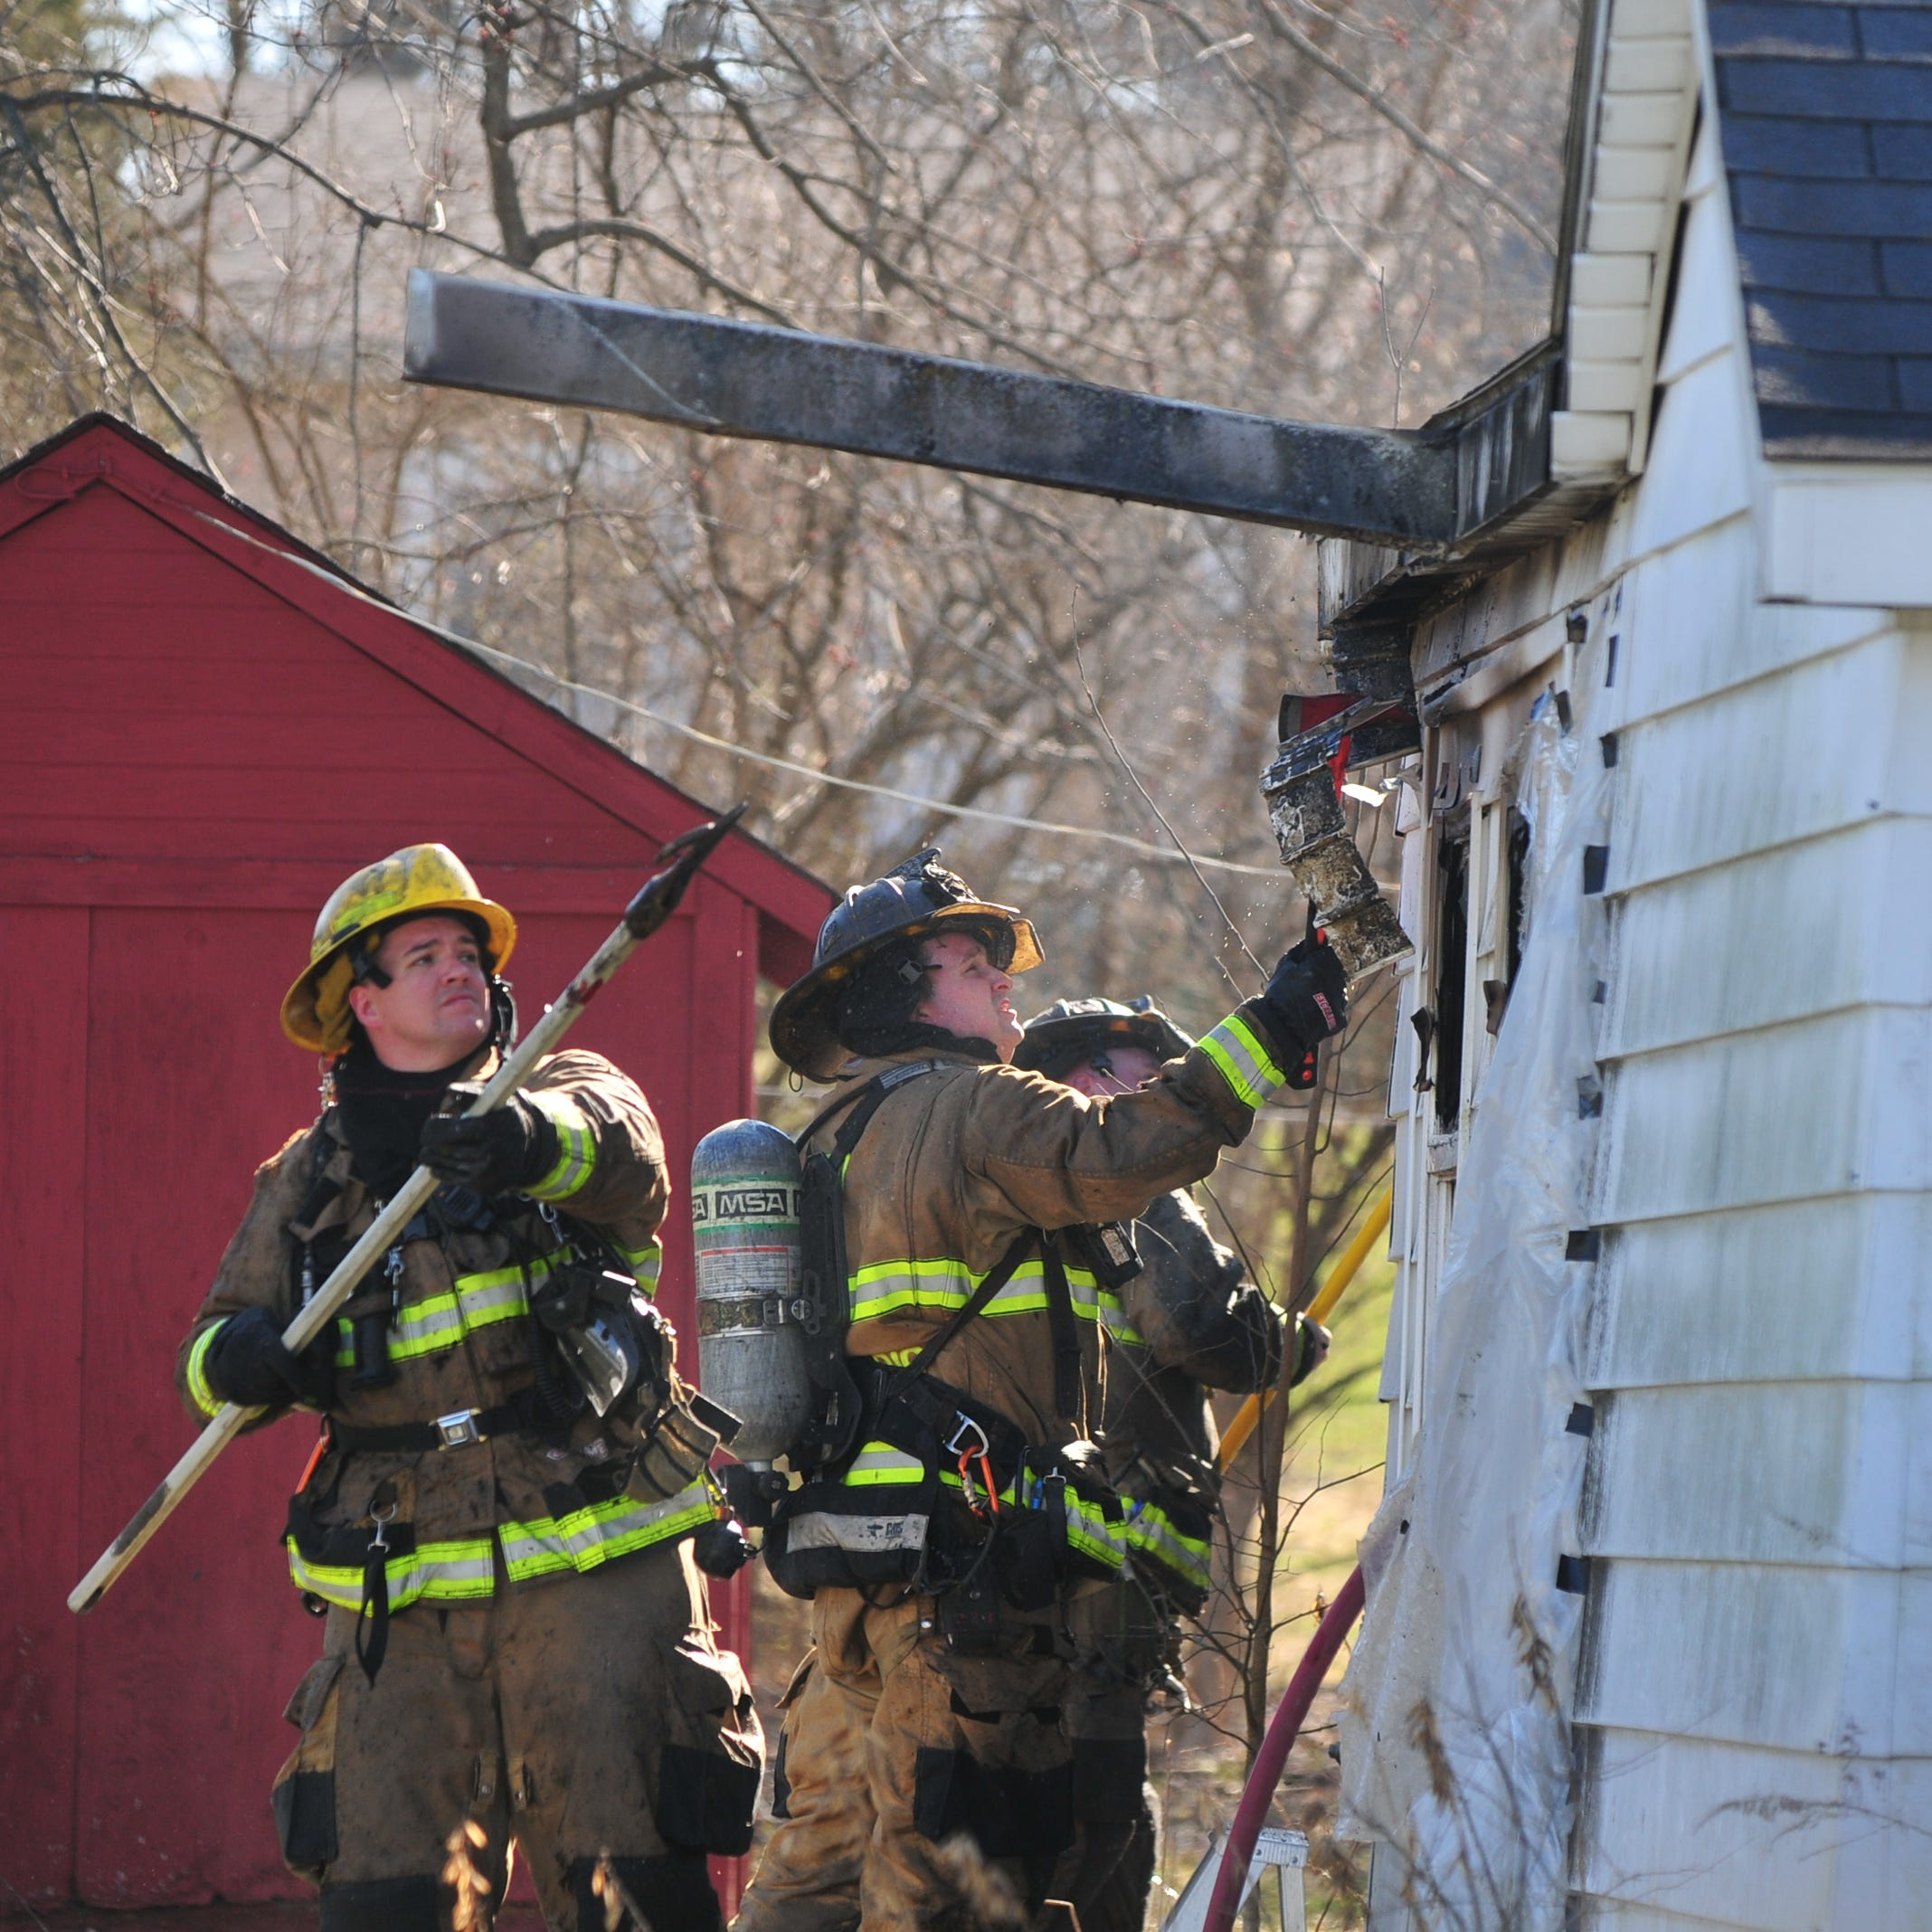 Space heater's extension cord blamed for South 11th Street house fire